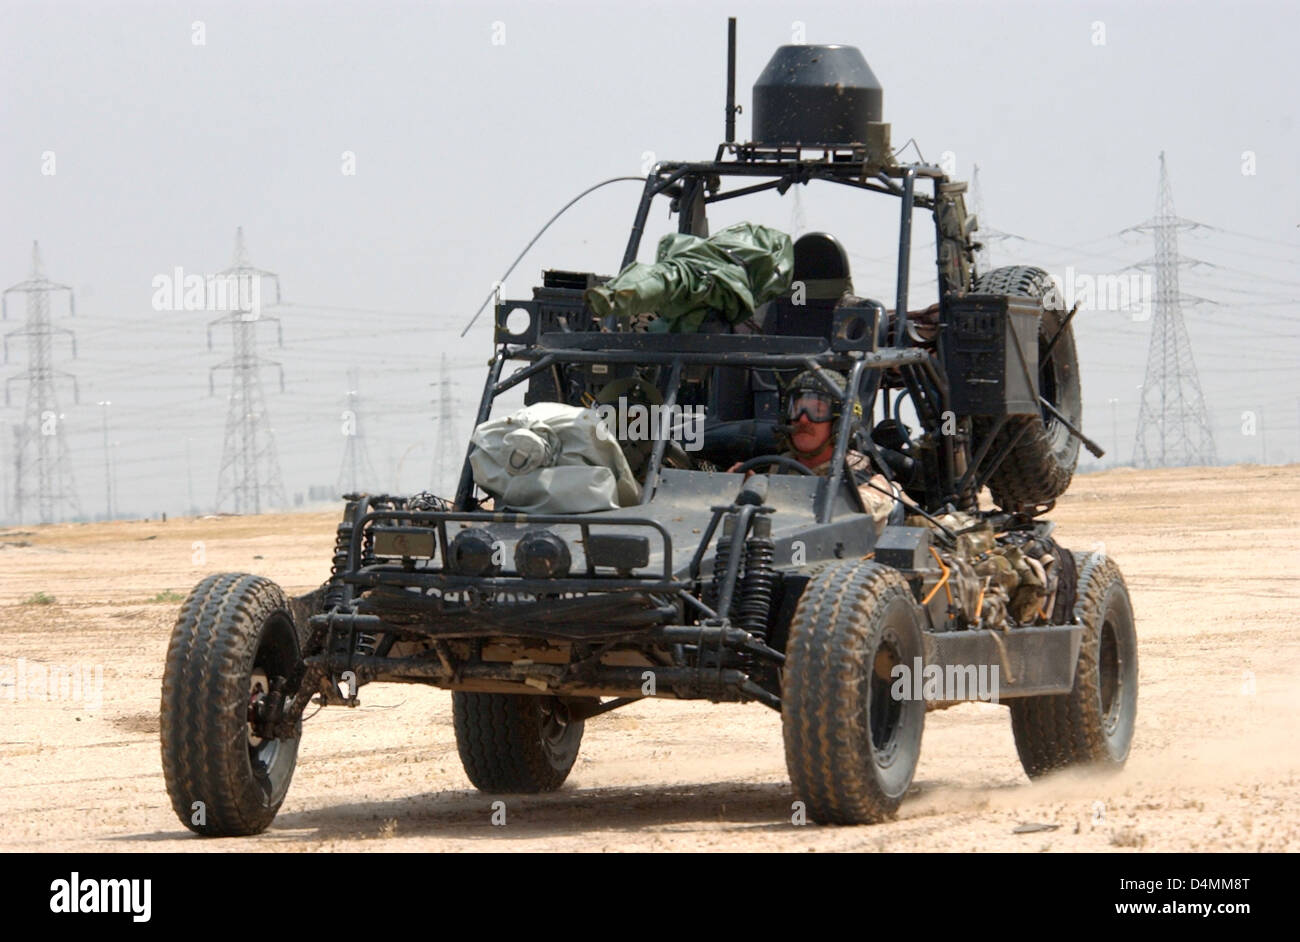 US Navy SEALs operate a Desert Patrol Vehicle while preparing for an upcoming mission February 13, 2002 in Camp - Stock Image